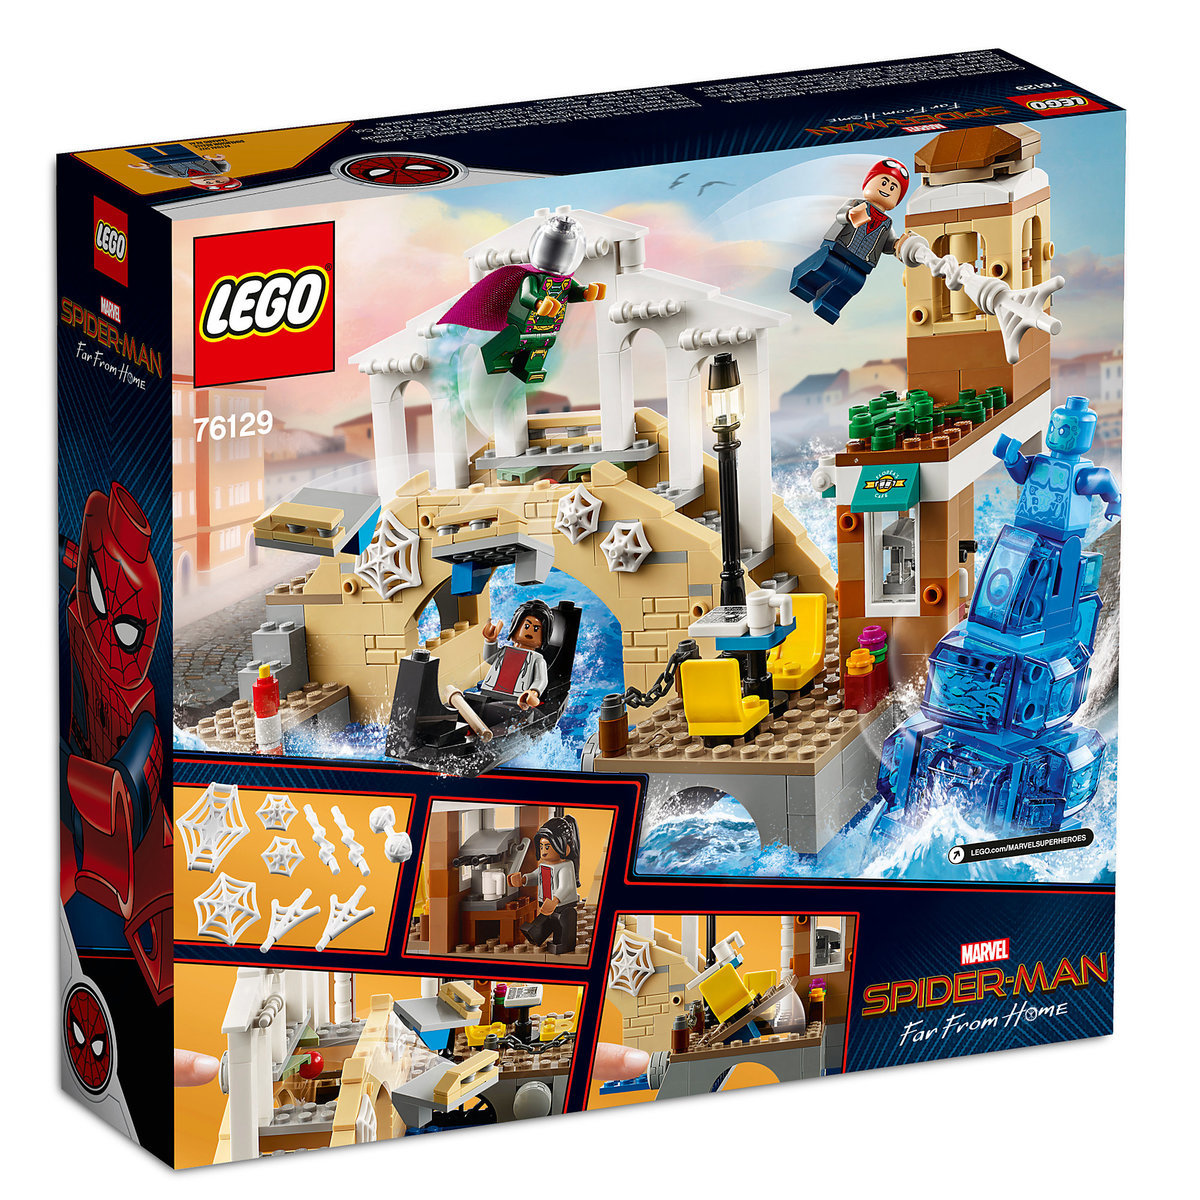 Spider man far from home hydro man attack play set by lego